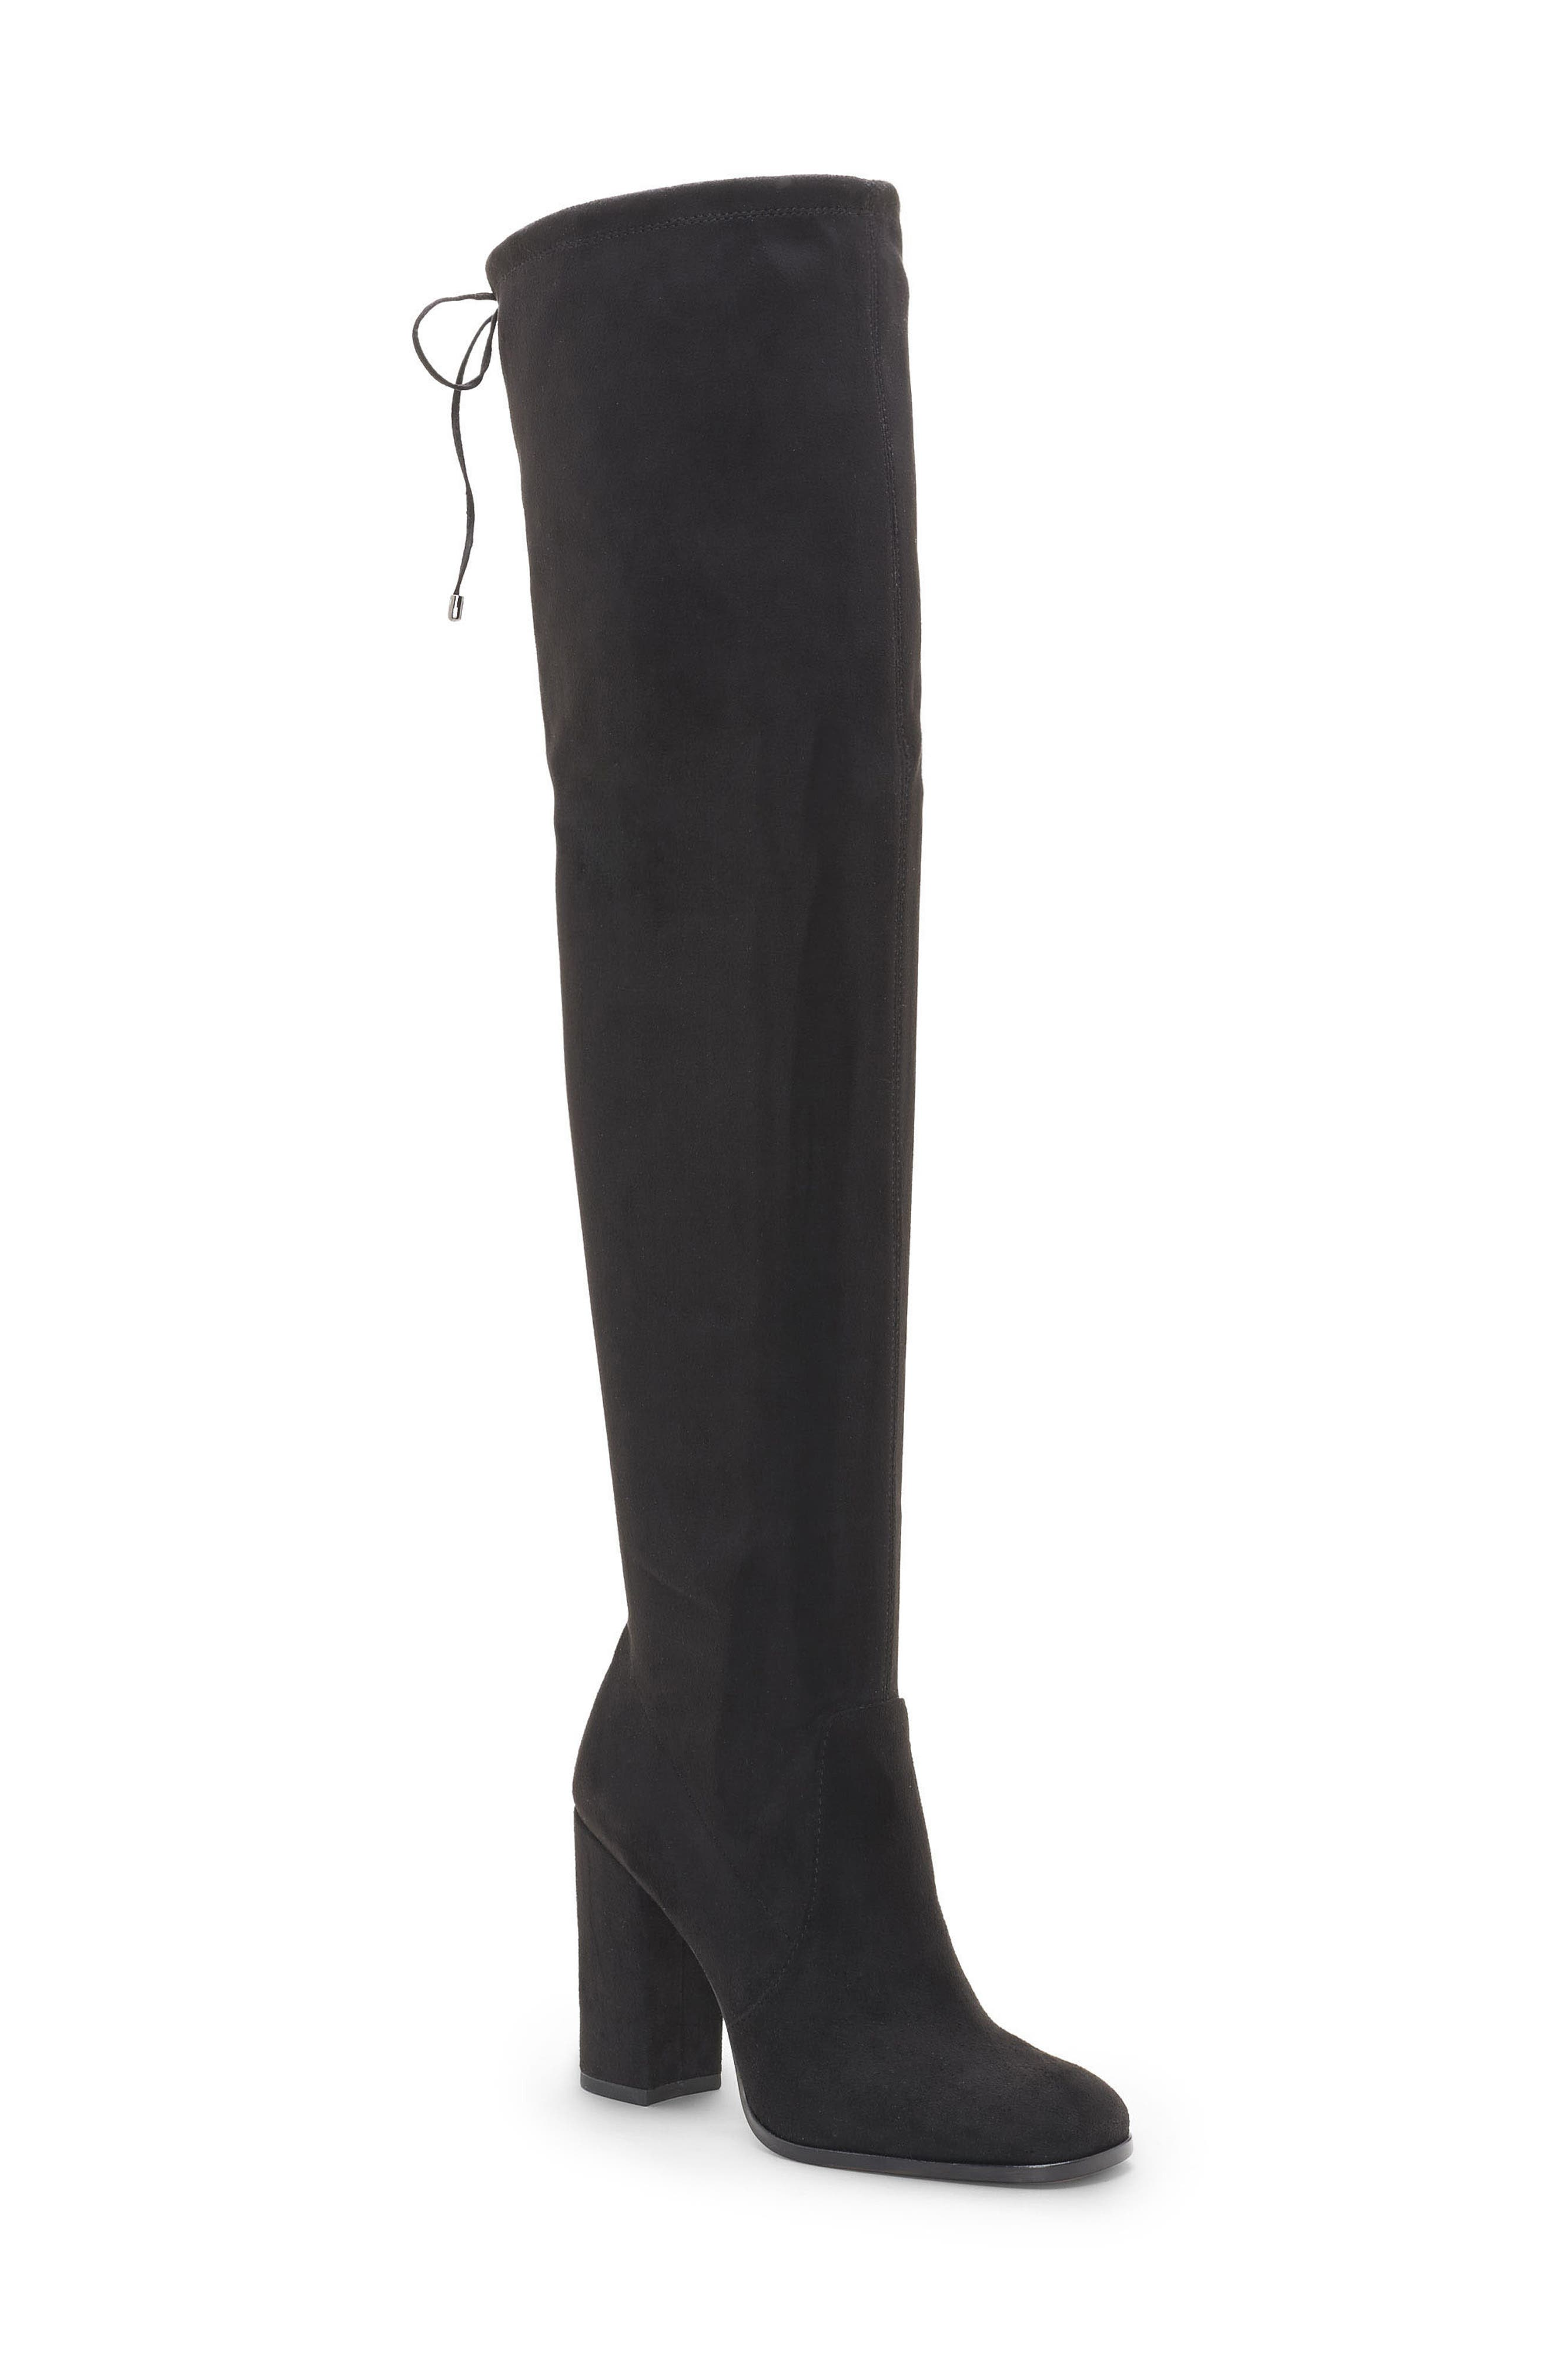 ENZO ANGIOLINI, Marline Thigh High Boot, Main thumbnail 1, color, 001